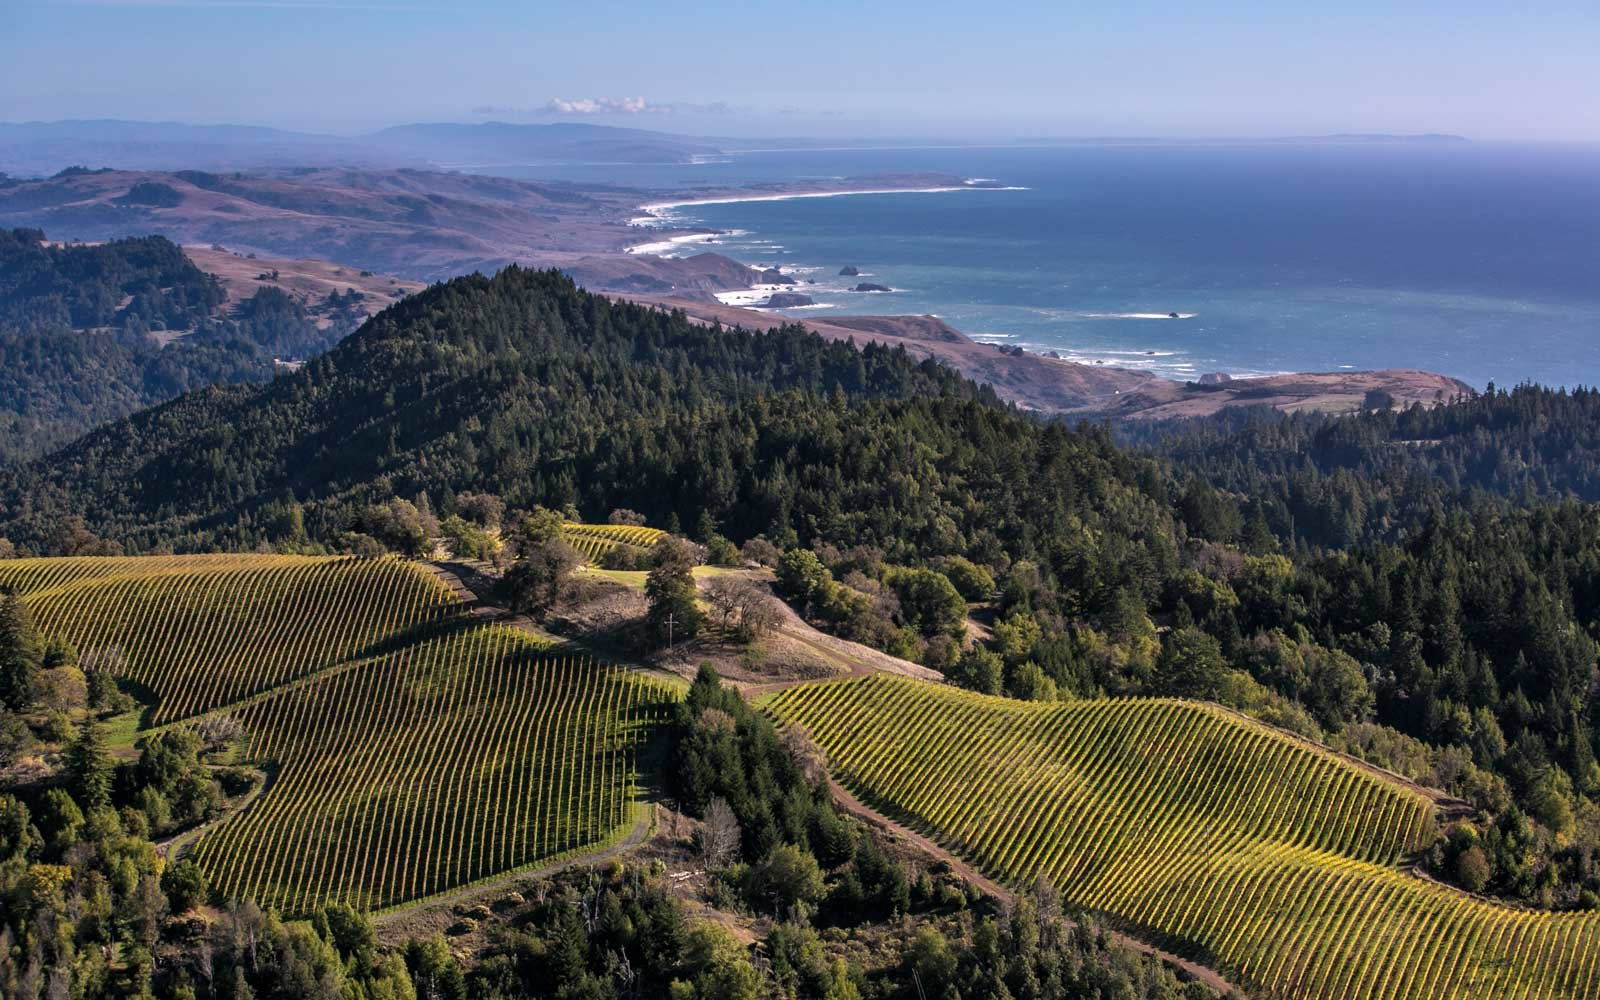 Fort Ross Vineyard & Winery overlooks the Pacific Ocean near Jenner, California